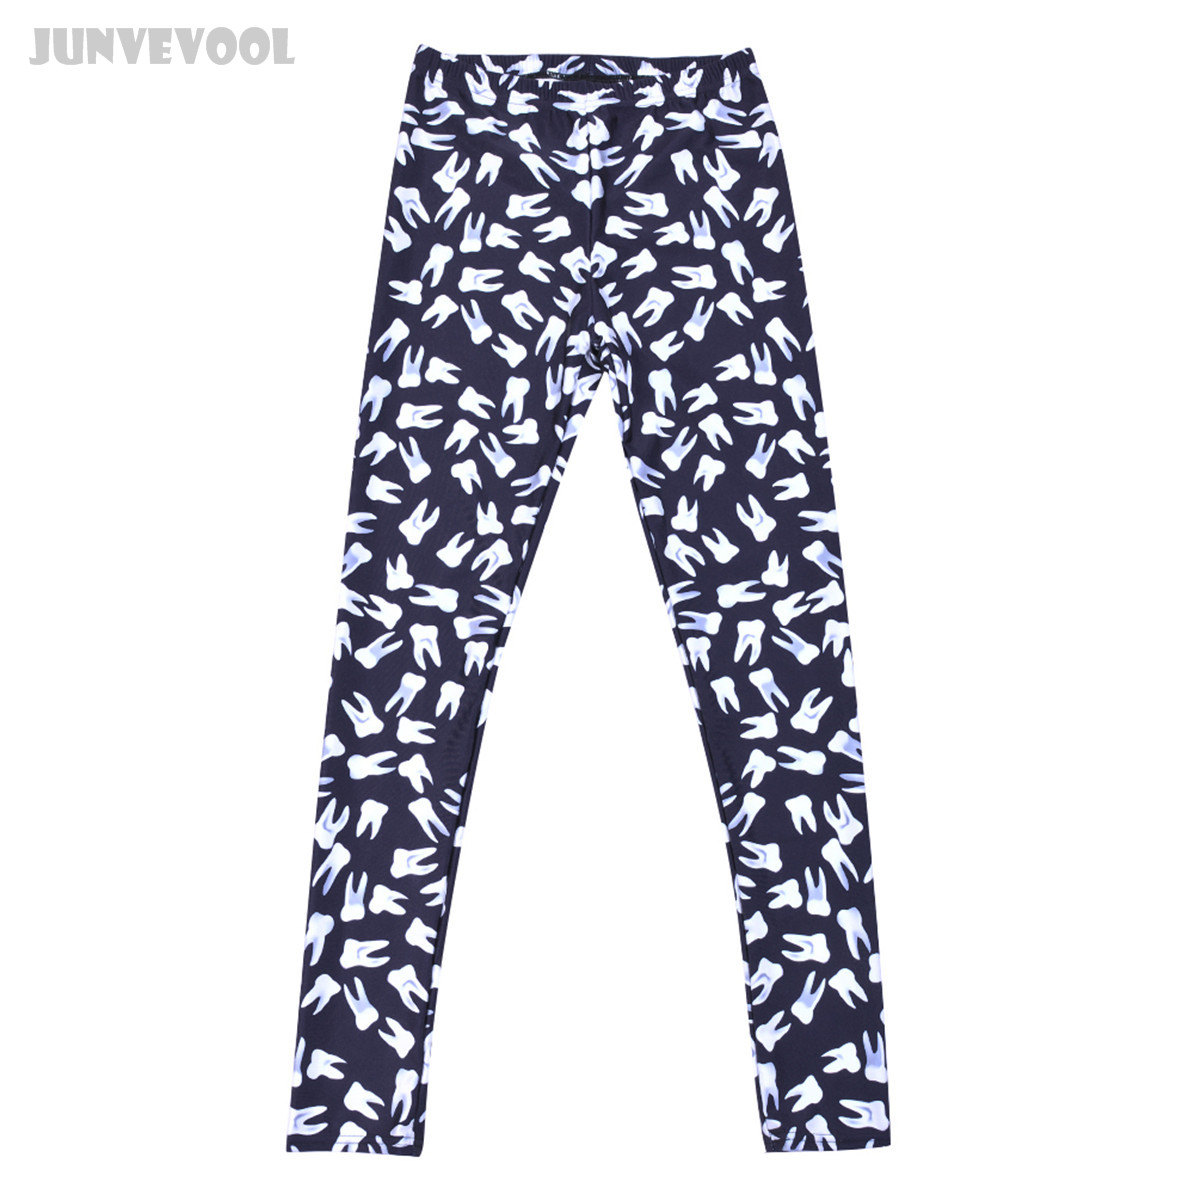 03f495003267 ▽Fitness Woman Leggings Tooth Printed Trousers Women High Waist ...